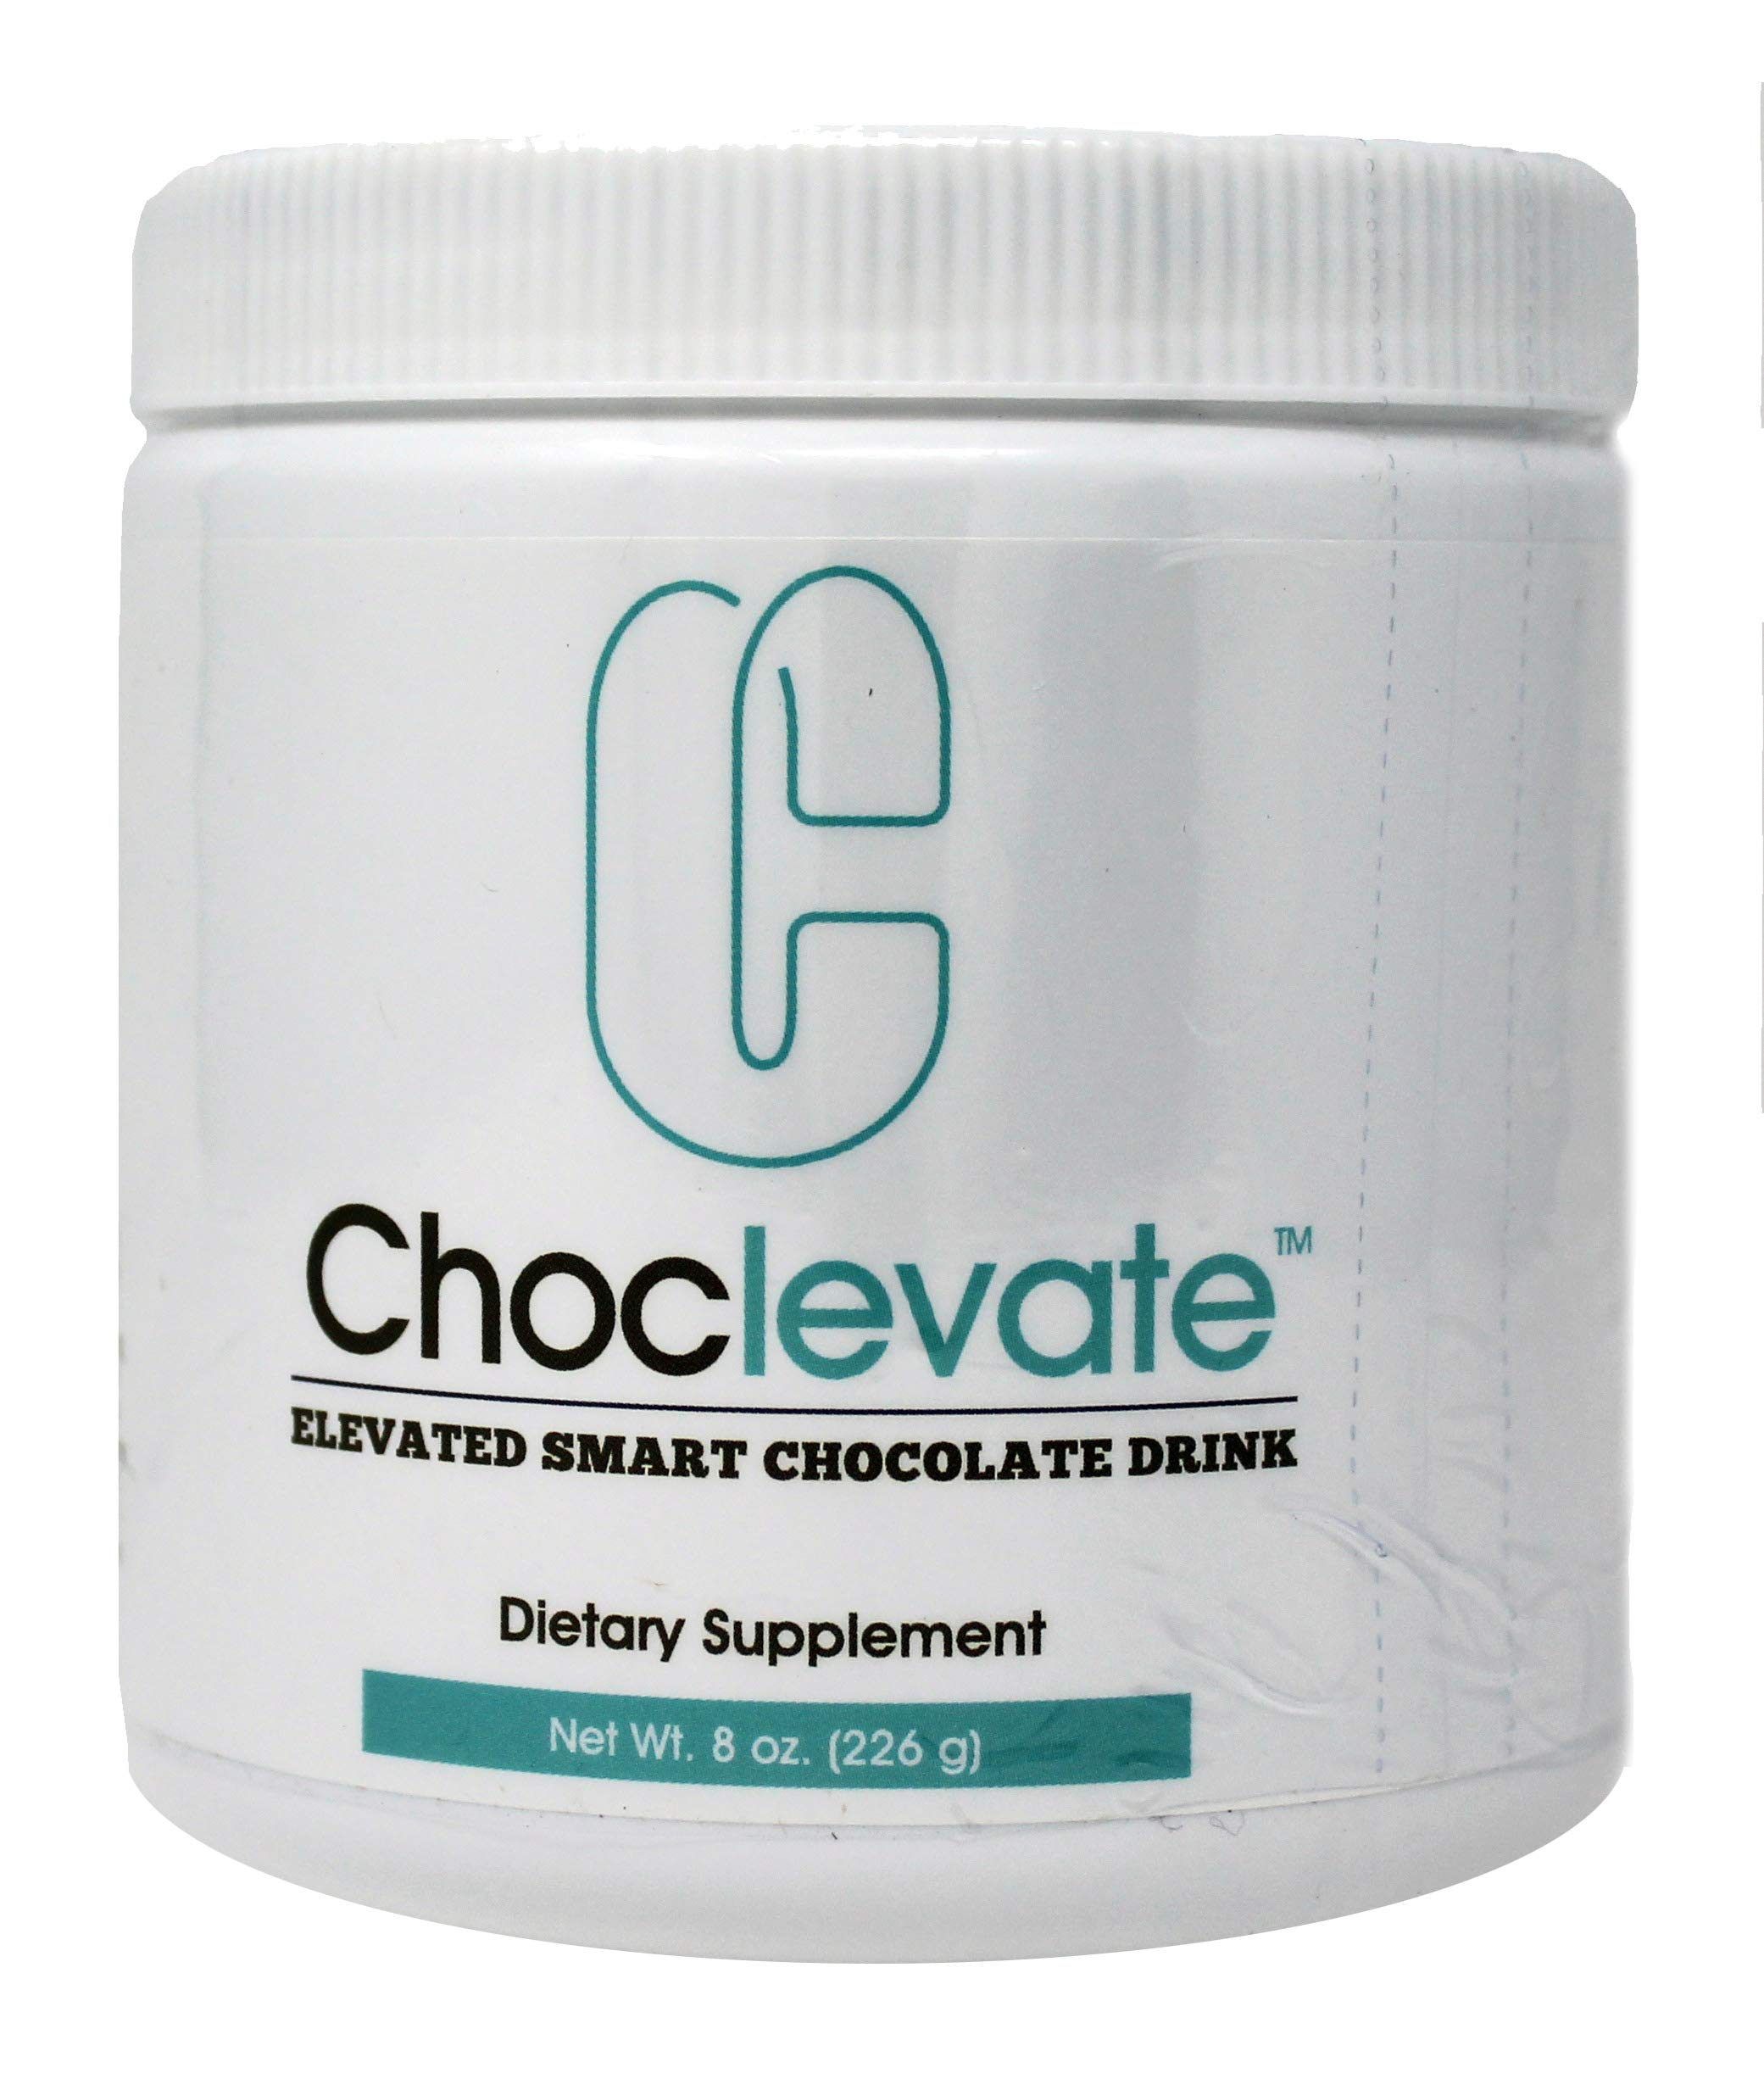 Elevacity Choclevate 8 ounces (226 grams) 8 Grams Per Serving, 30 servings/Container 35 Calories and 5 milligrams Caffeine/Serving Original Formula by Elevacity